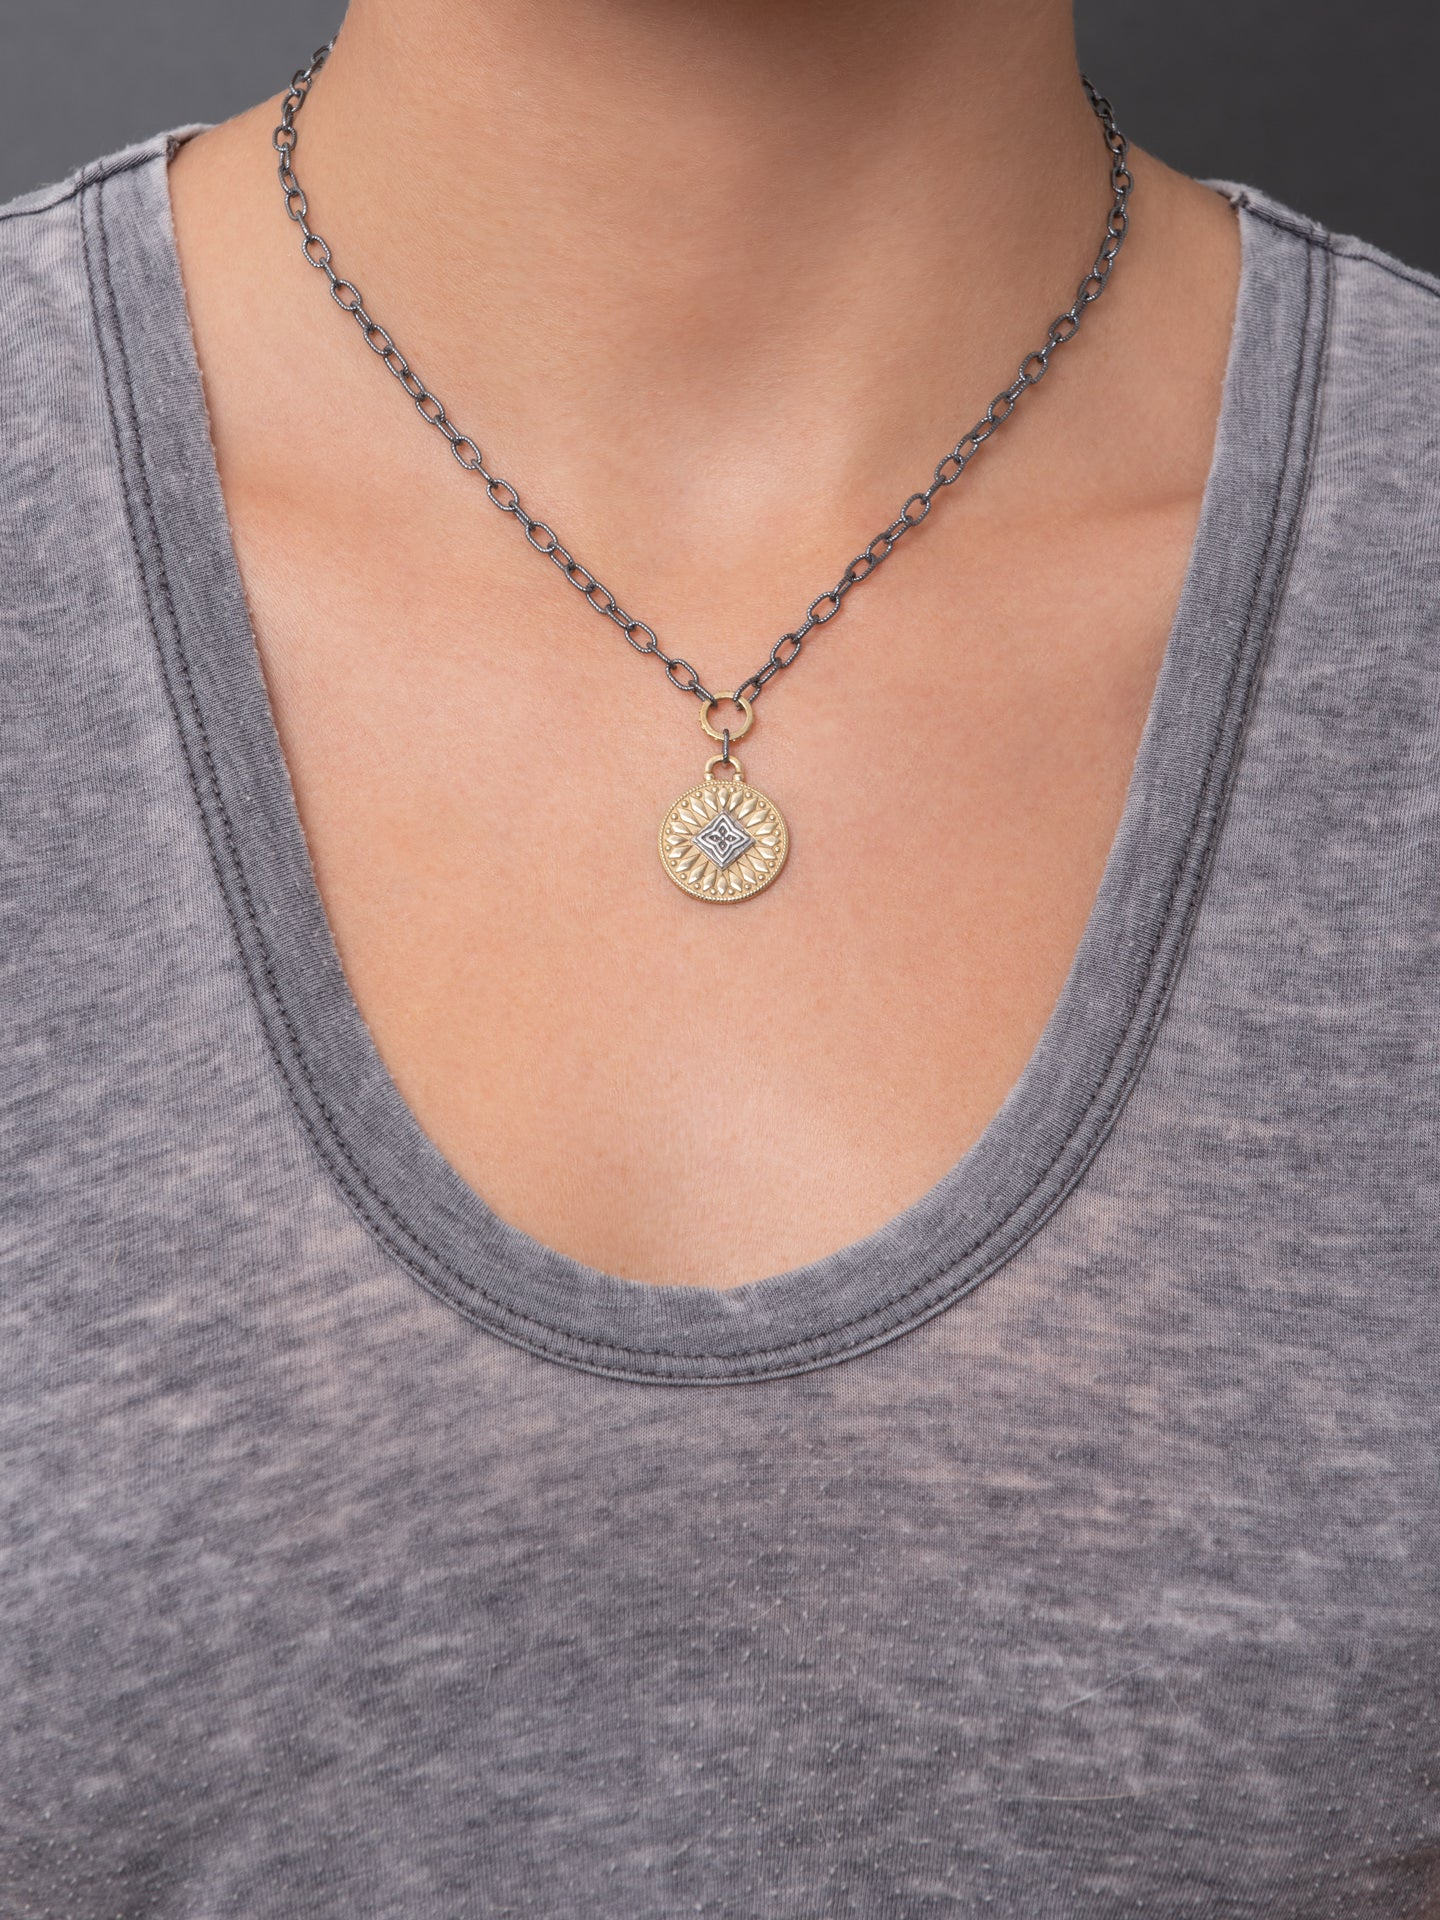 "Channel Necklace - Surya ""radiate energy"""